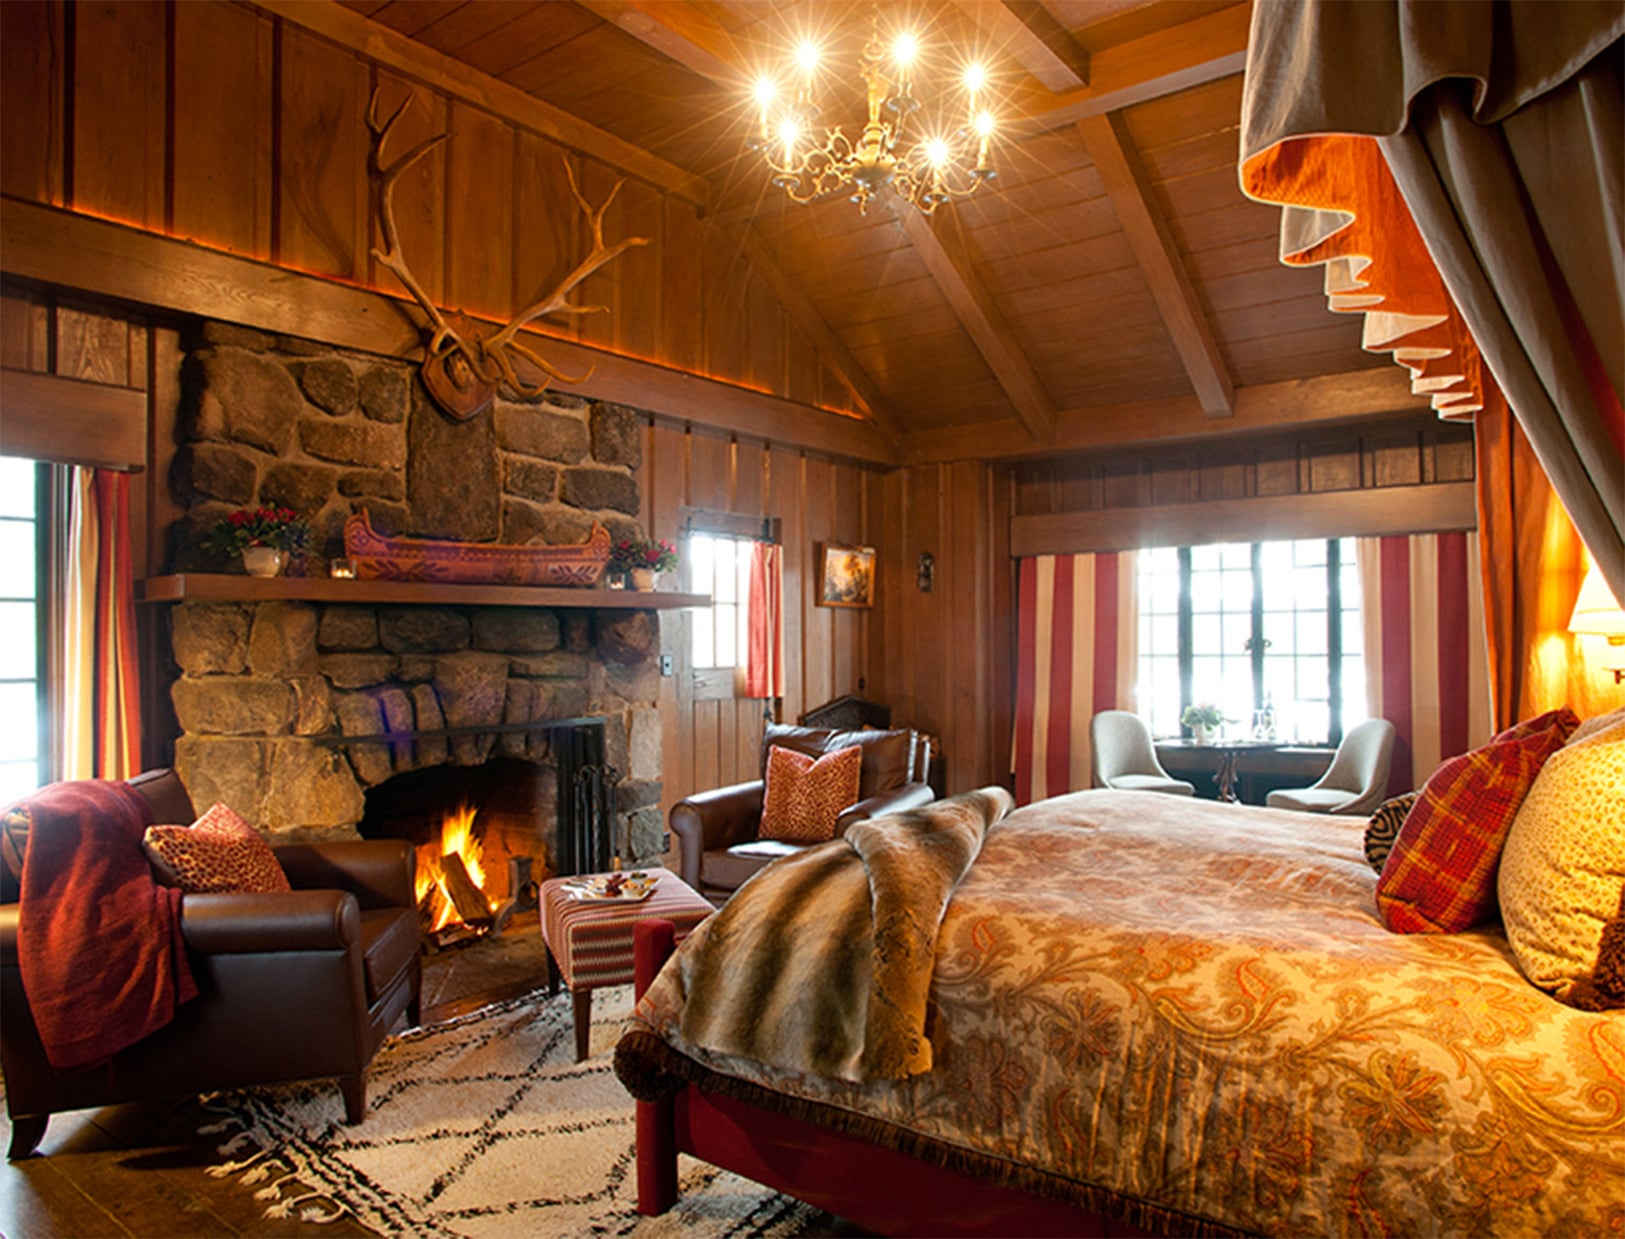 14 Classic Escapes for Your Next Getaway, from Coast to Coast